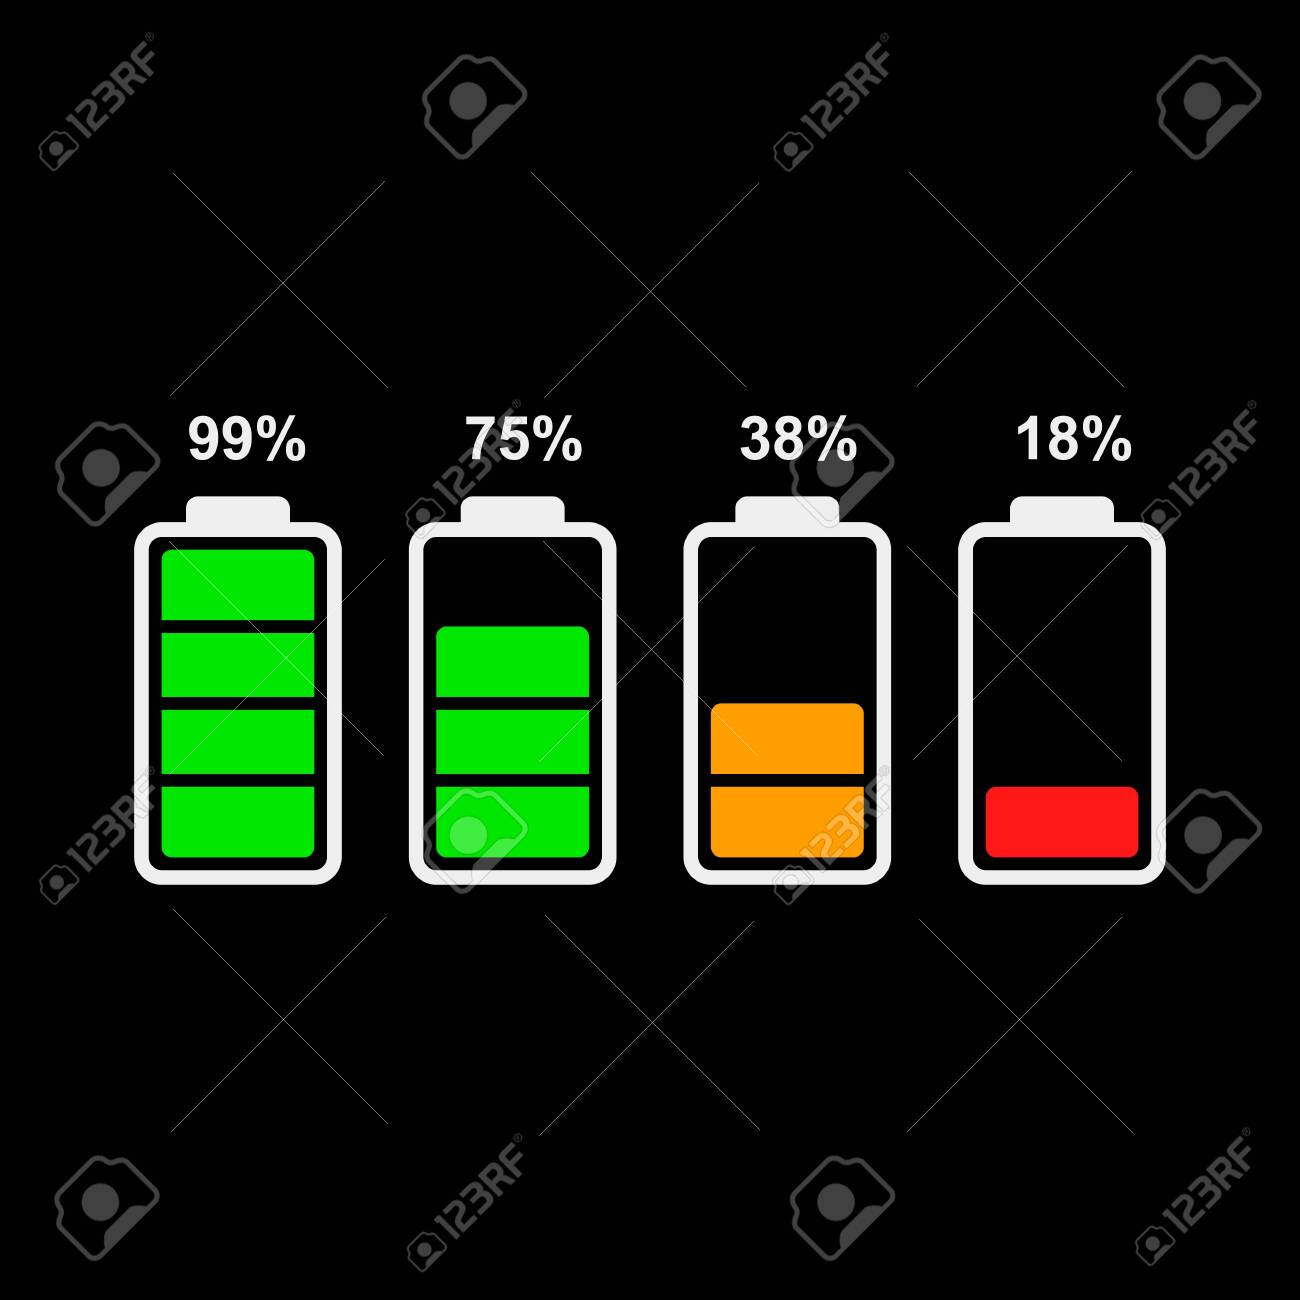 Colored Modern Icons Of Battery Level Indicator Flat Vector Royalty Free Cliparts Vectors And Stock Illustration Image 127750822